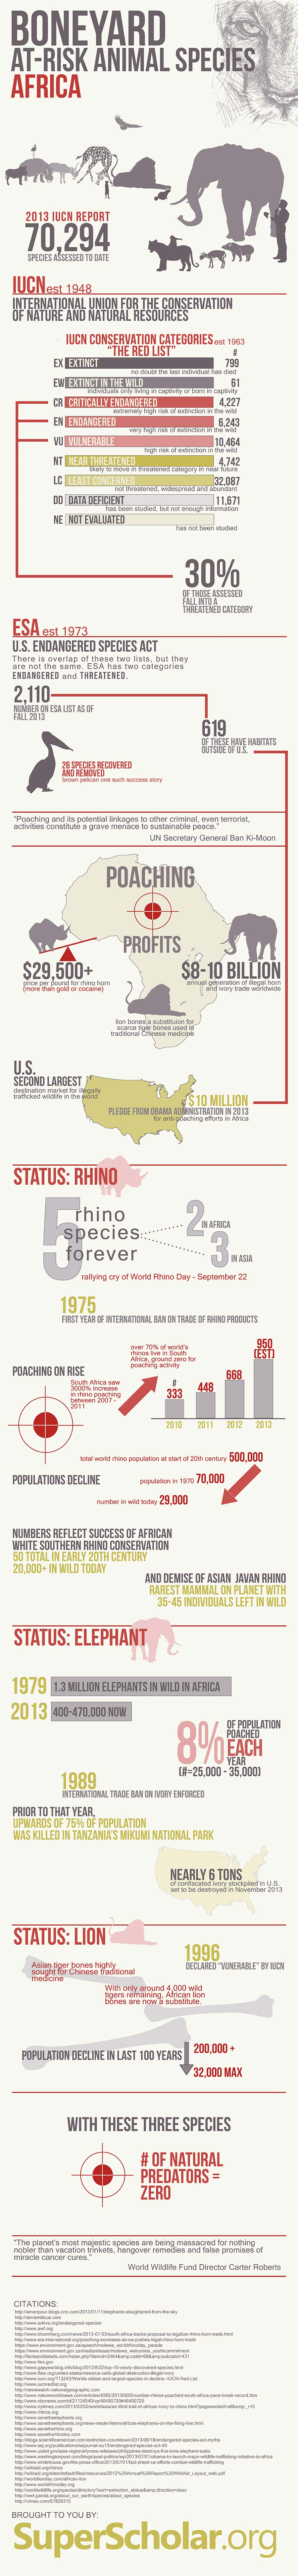 African Animals at Risk-Infographic